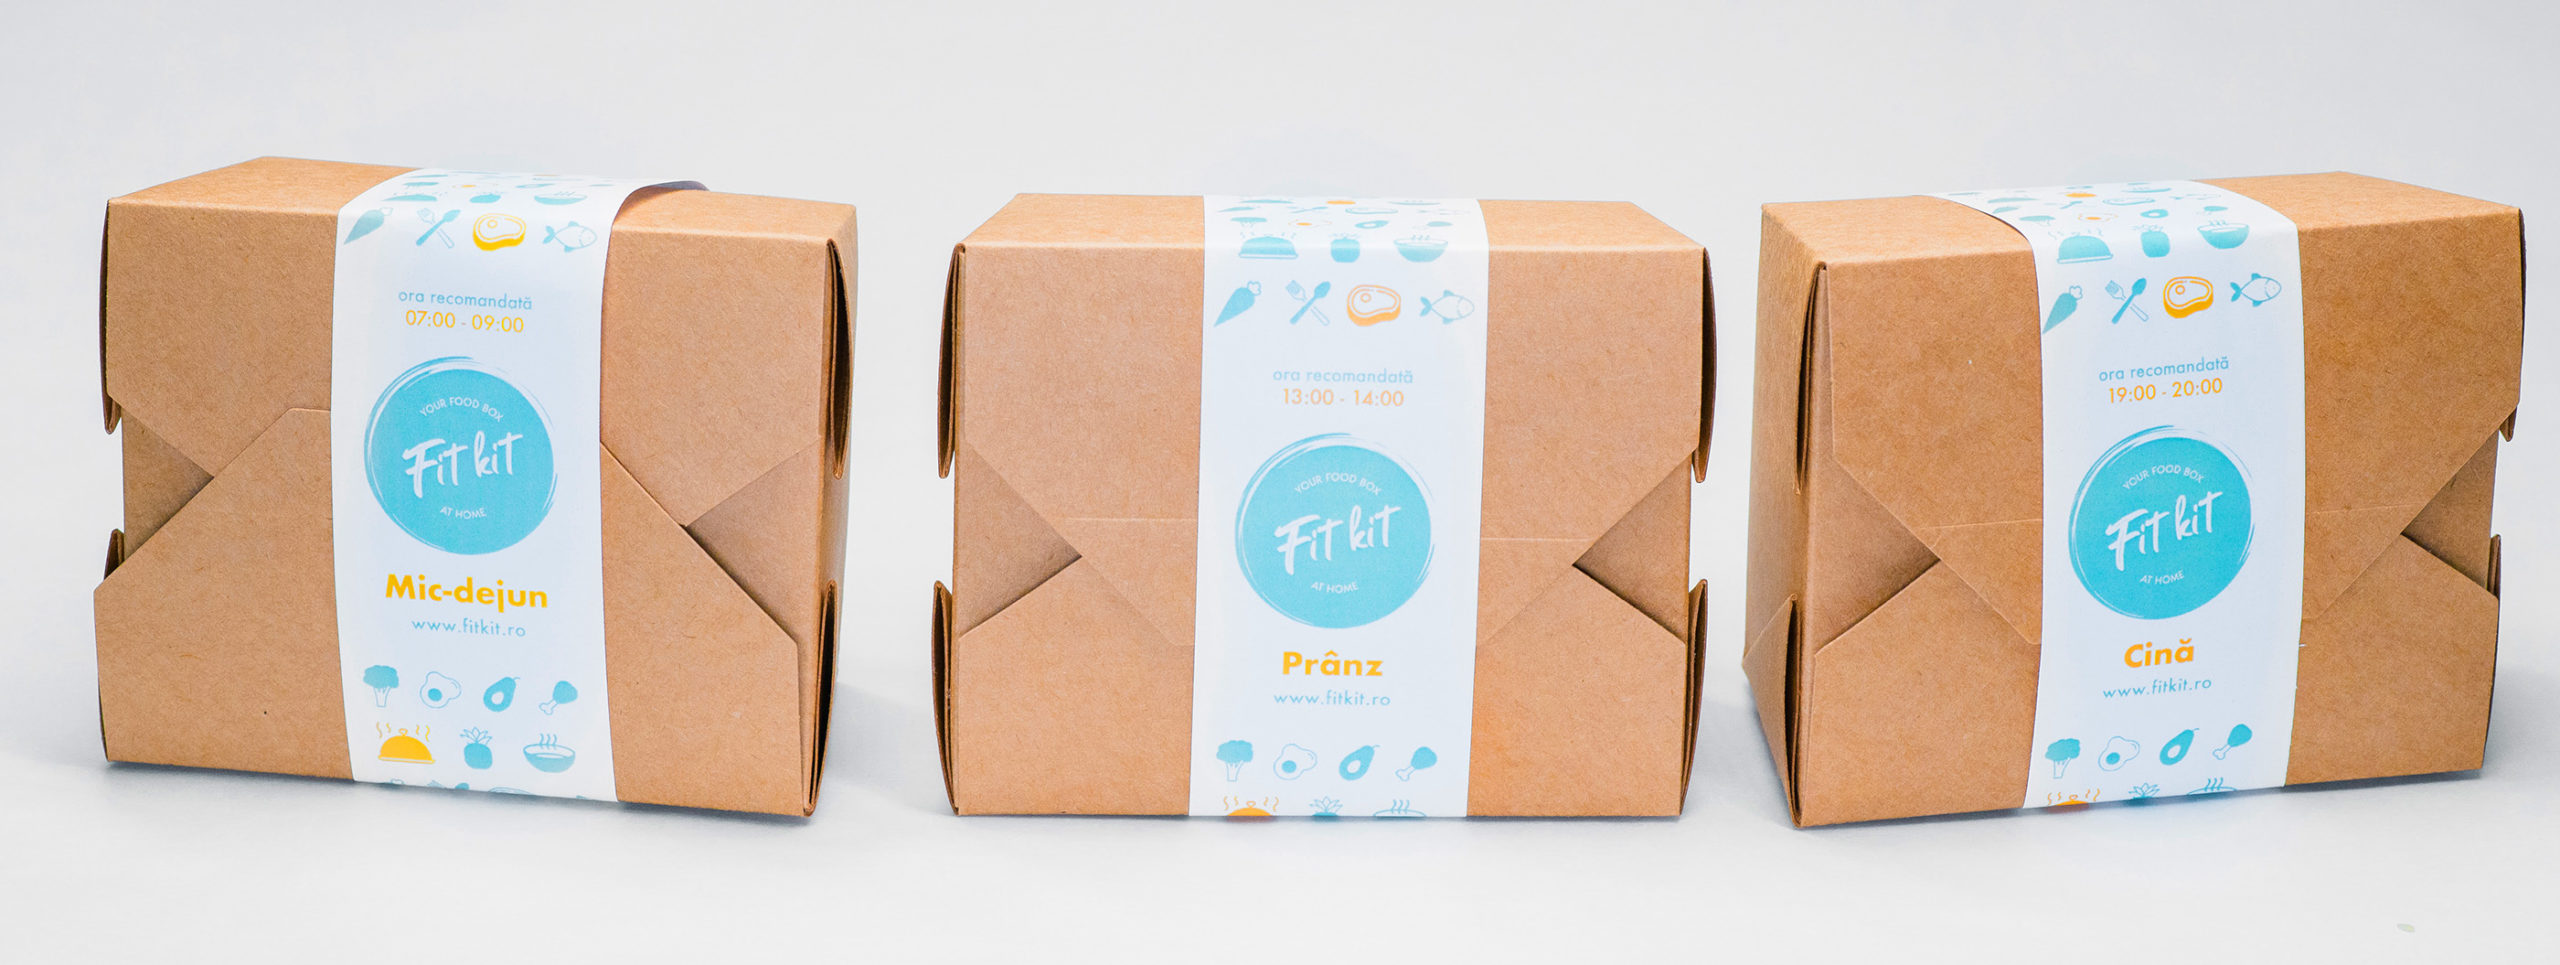 Fitkit packaging